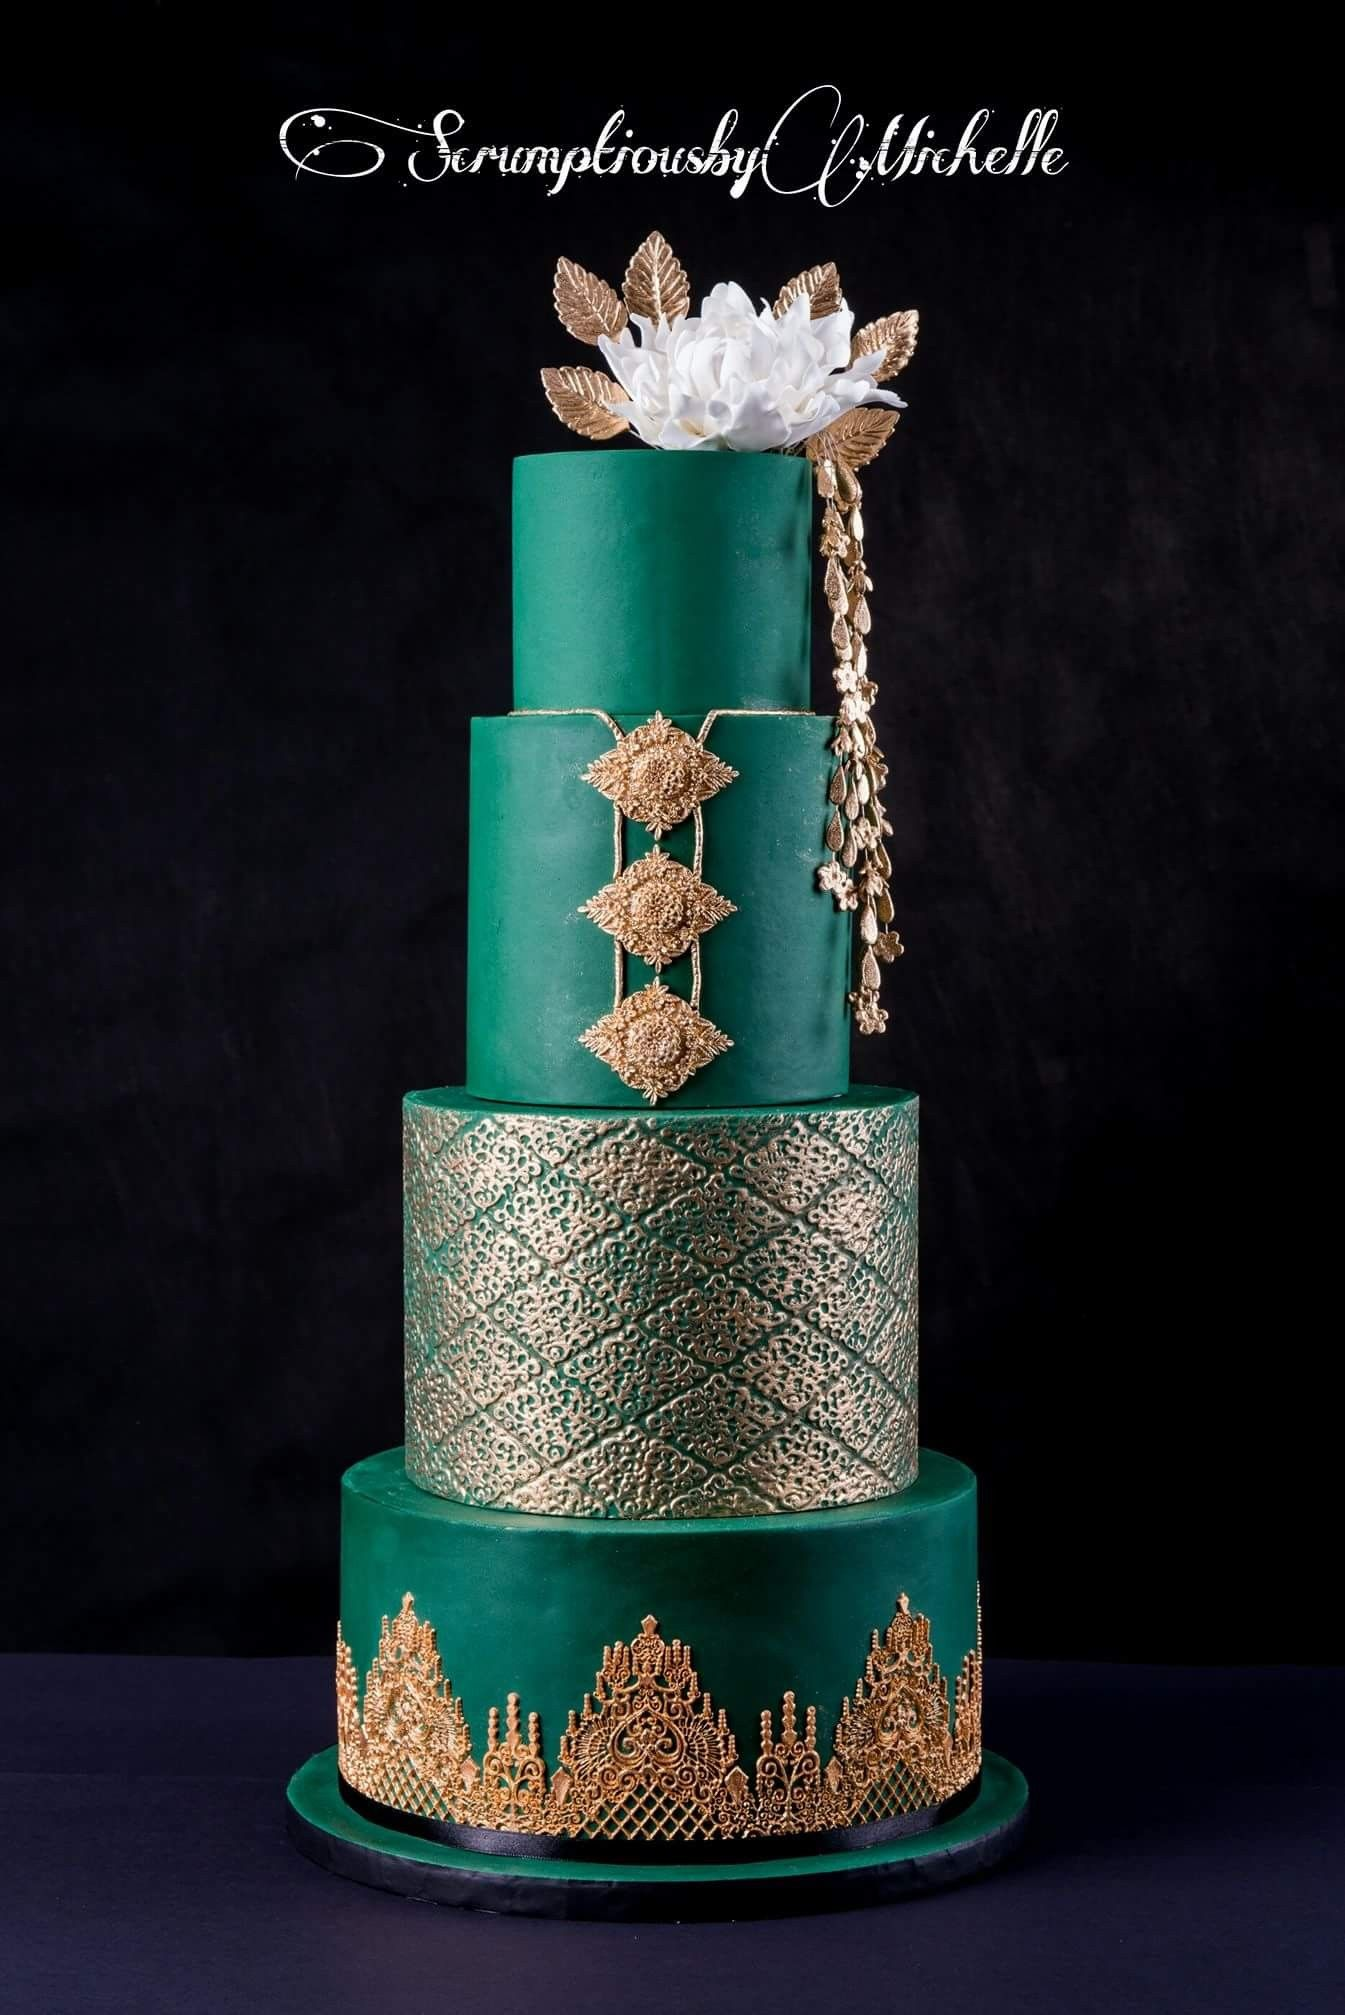 Alina Sava pinalina sava on wedding cakes | wedding cakes, green